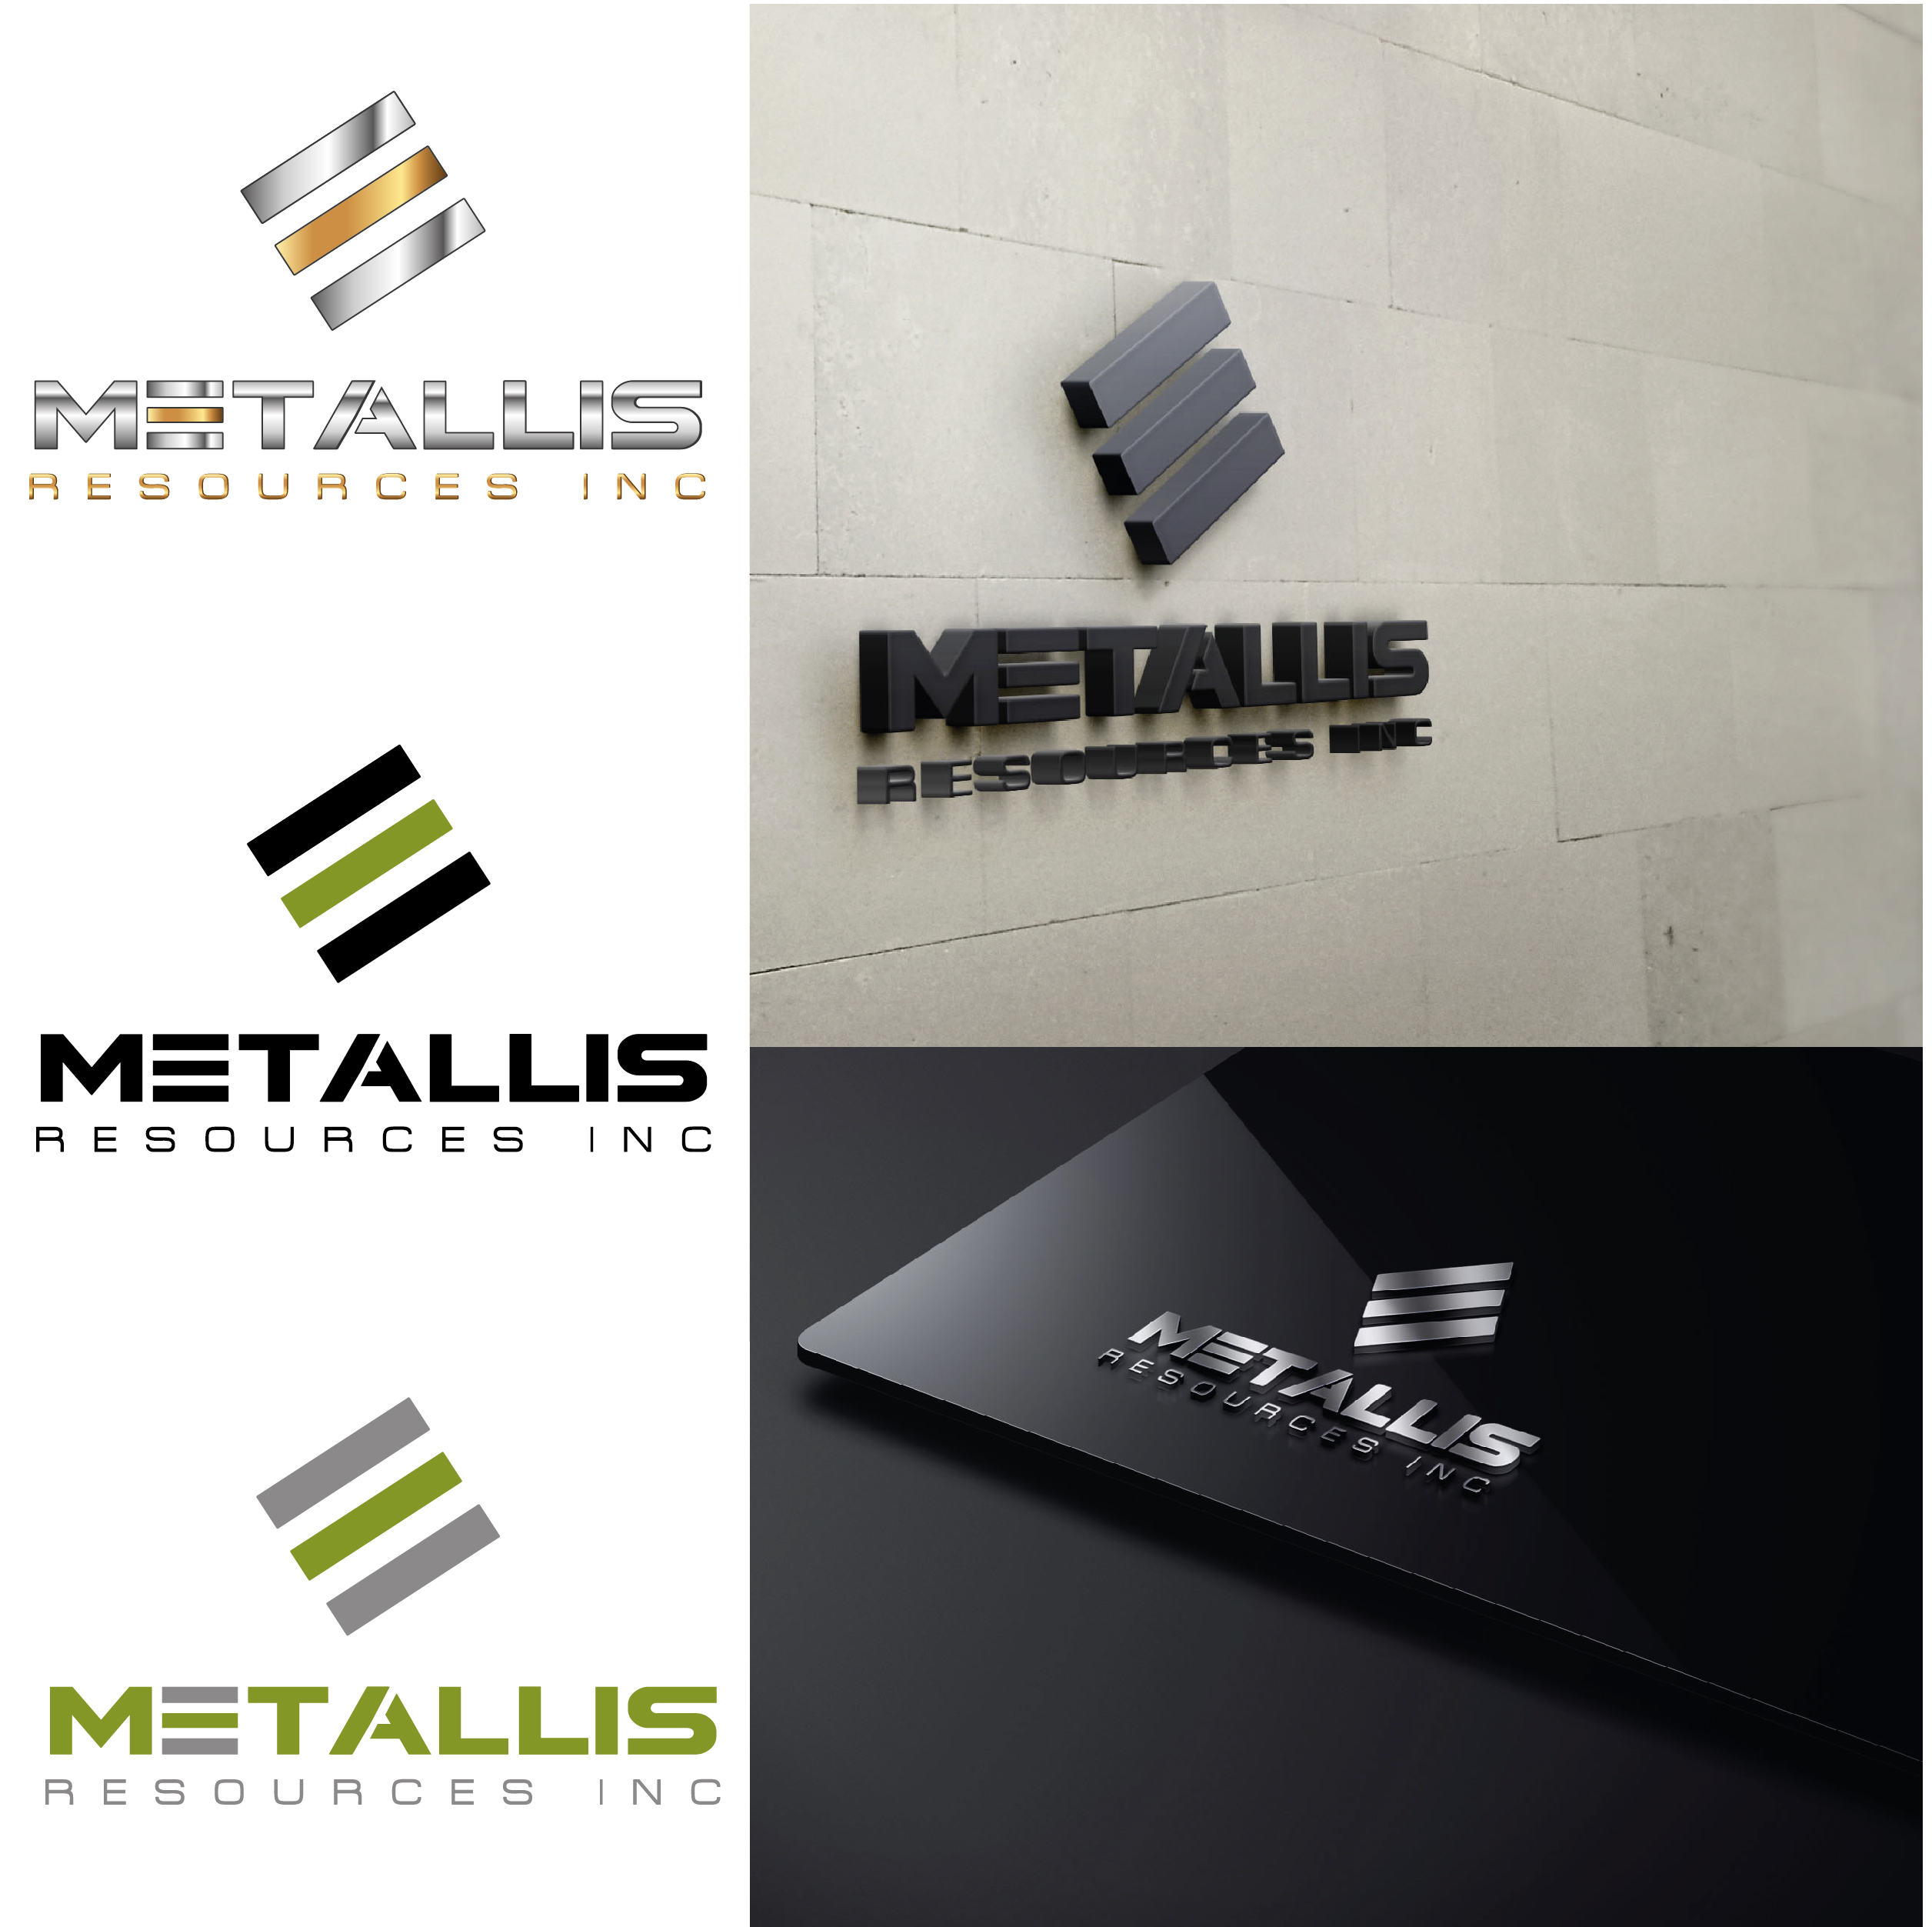 Logo Design by VENTSISLAV KOVACHEV - Entry No. 159 in the Logo Design Contest Metallis Resources Inc Logo Design.